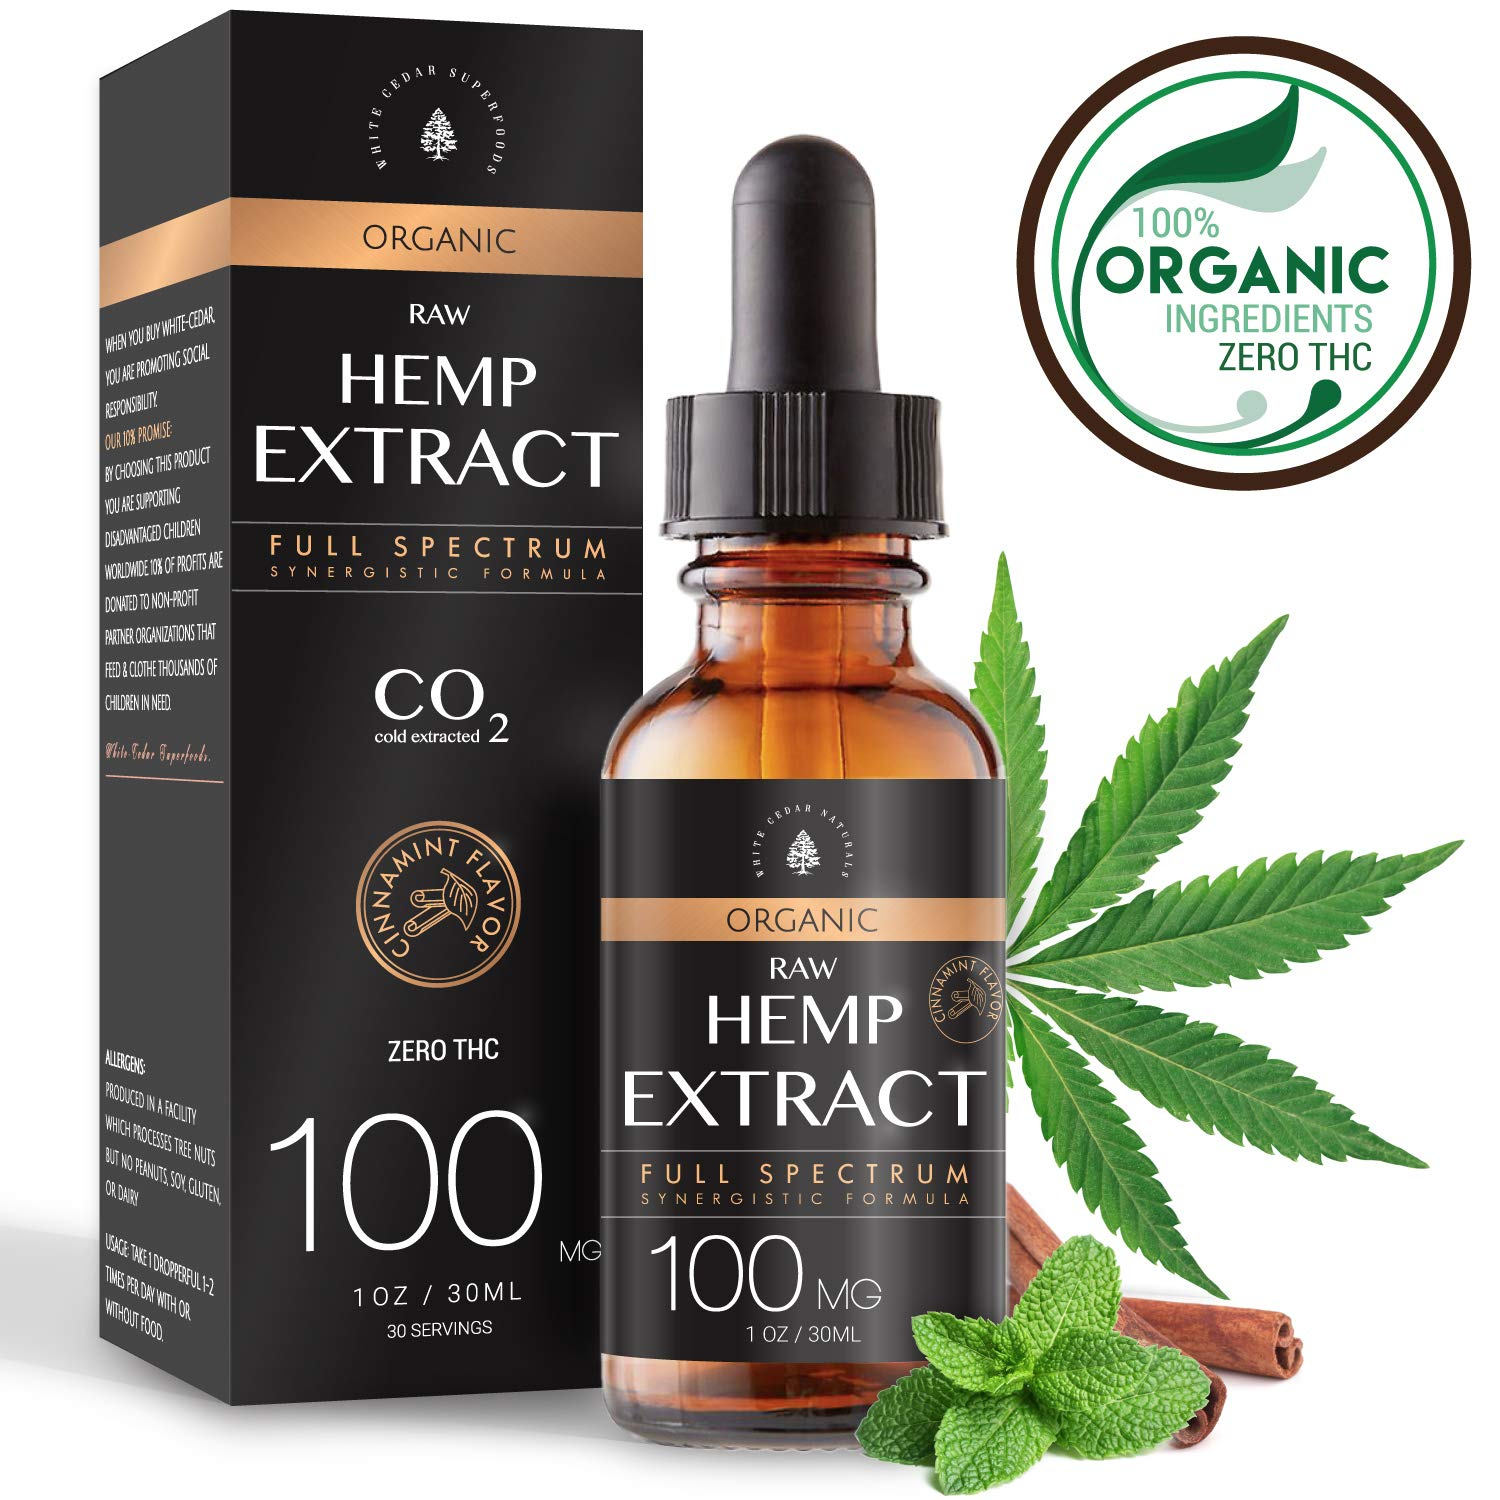 USDA Organic Raw Hemp Extract for Pain & Anxiety Relief (100MG), Cinnamint Flavor, Full Spectrum, Blended with Organic Hemp Seed Oil for Optimal Absorption, CO2 Cold Extracted, Kosher, Vegan, GF, 1oz